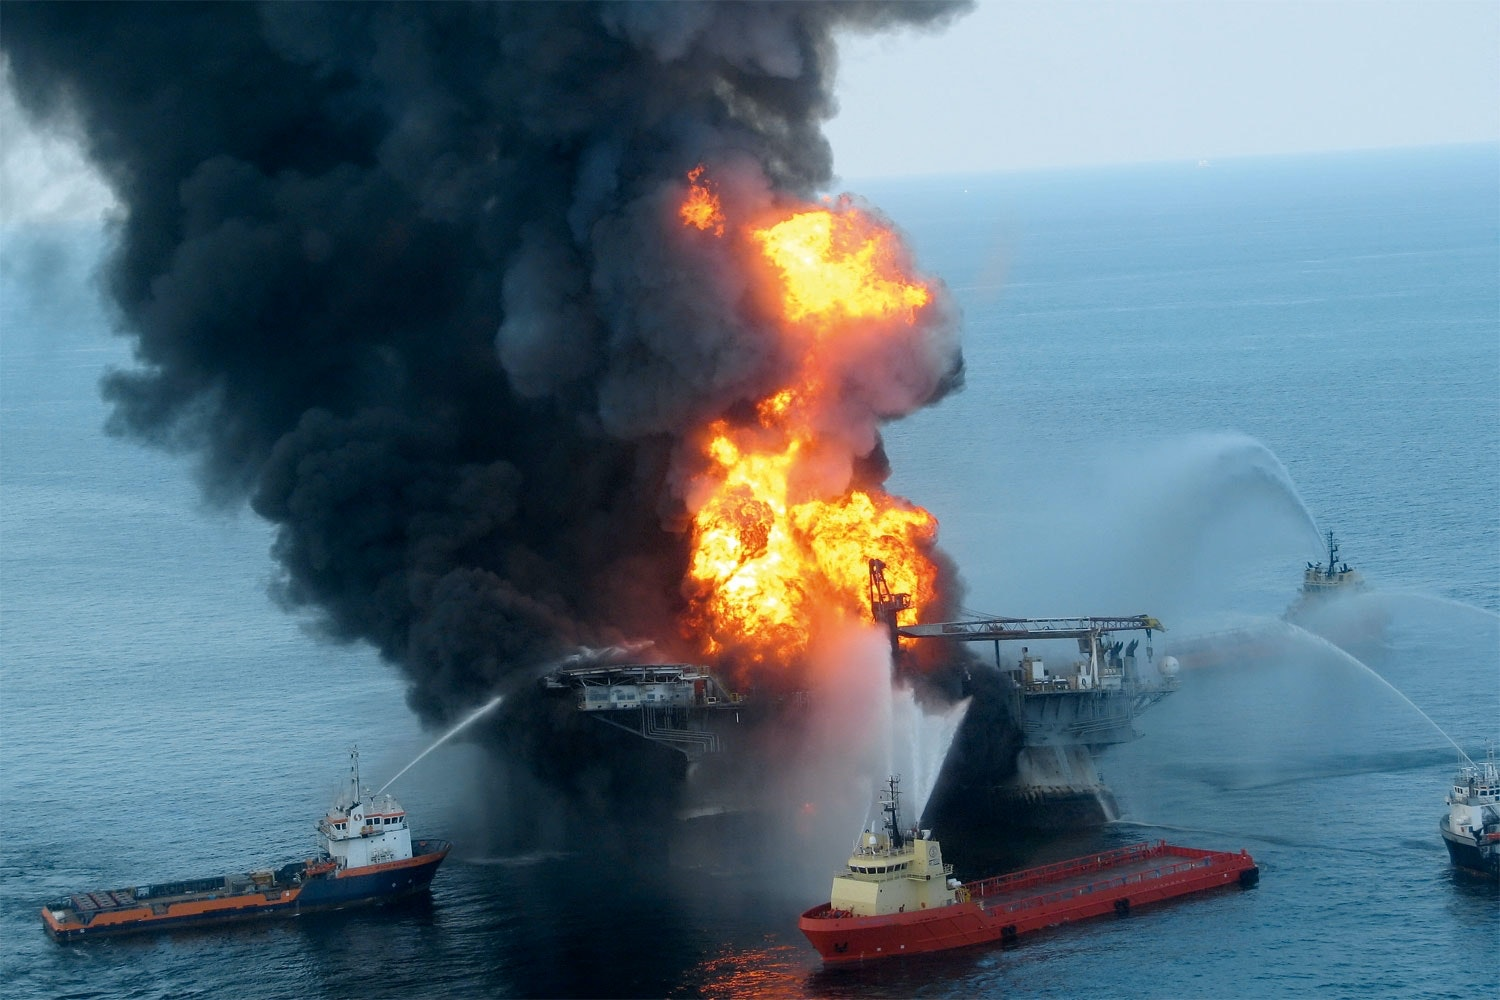 Deepwater Horizon in flames